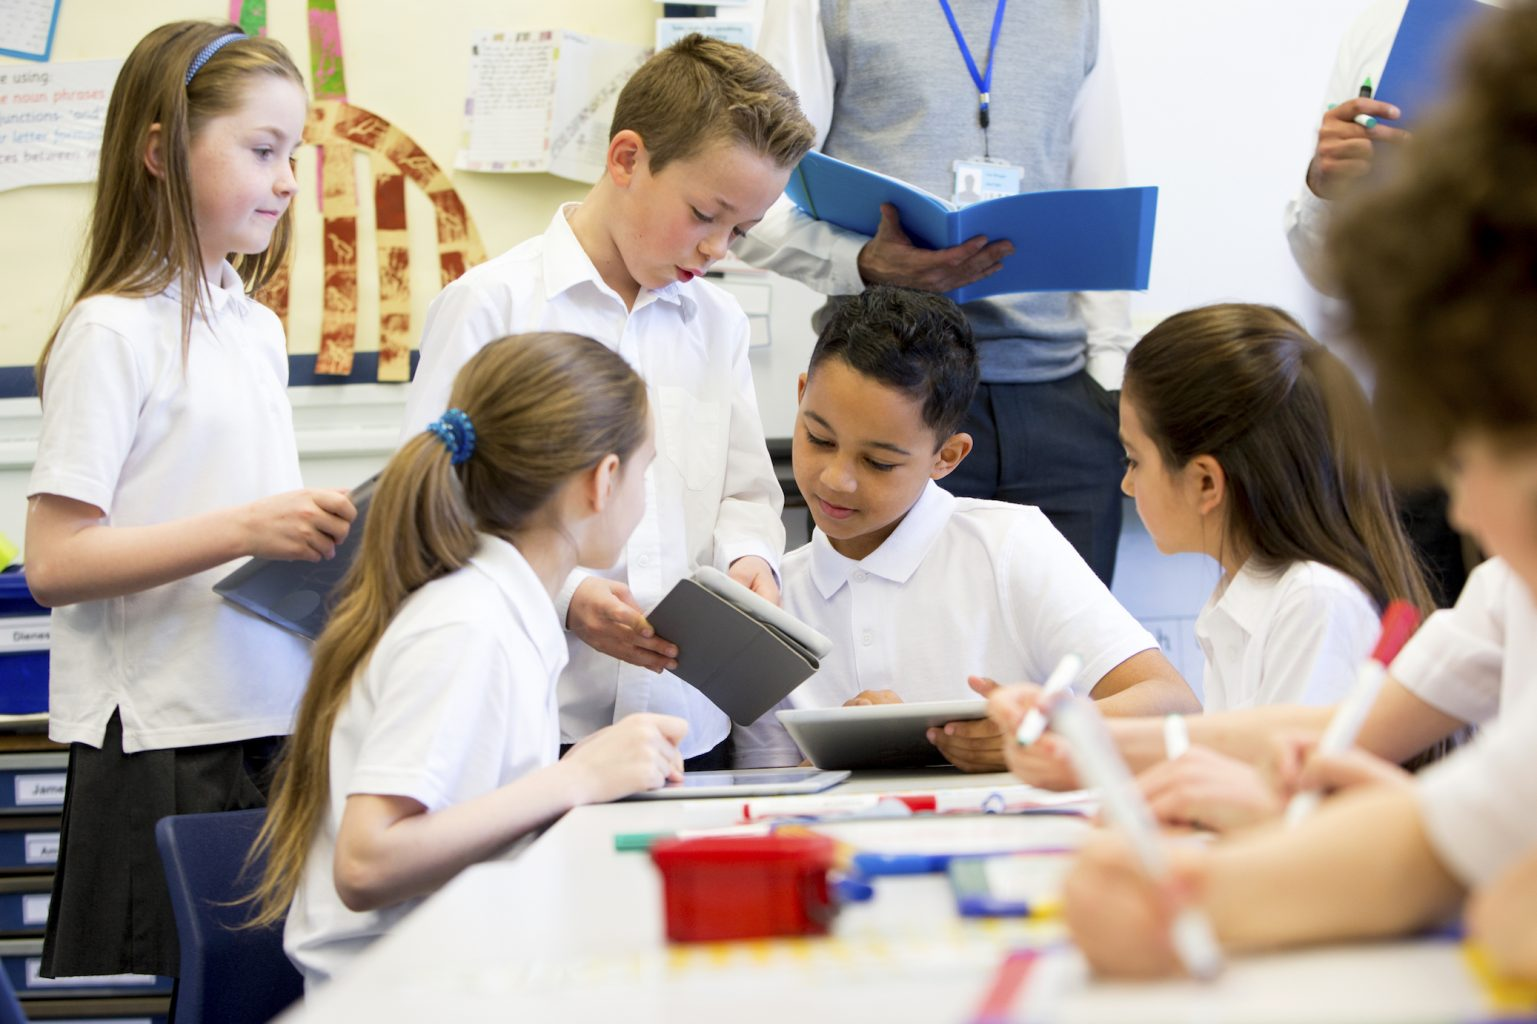 A group of school children can be seen working on digital tablets and whiteboards, they are all working happily. Two unrecognisable teachers can be seen in the background.